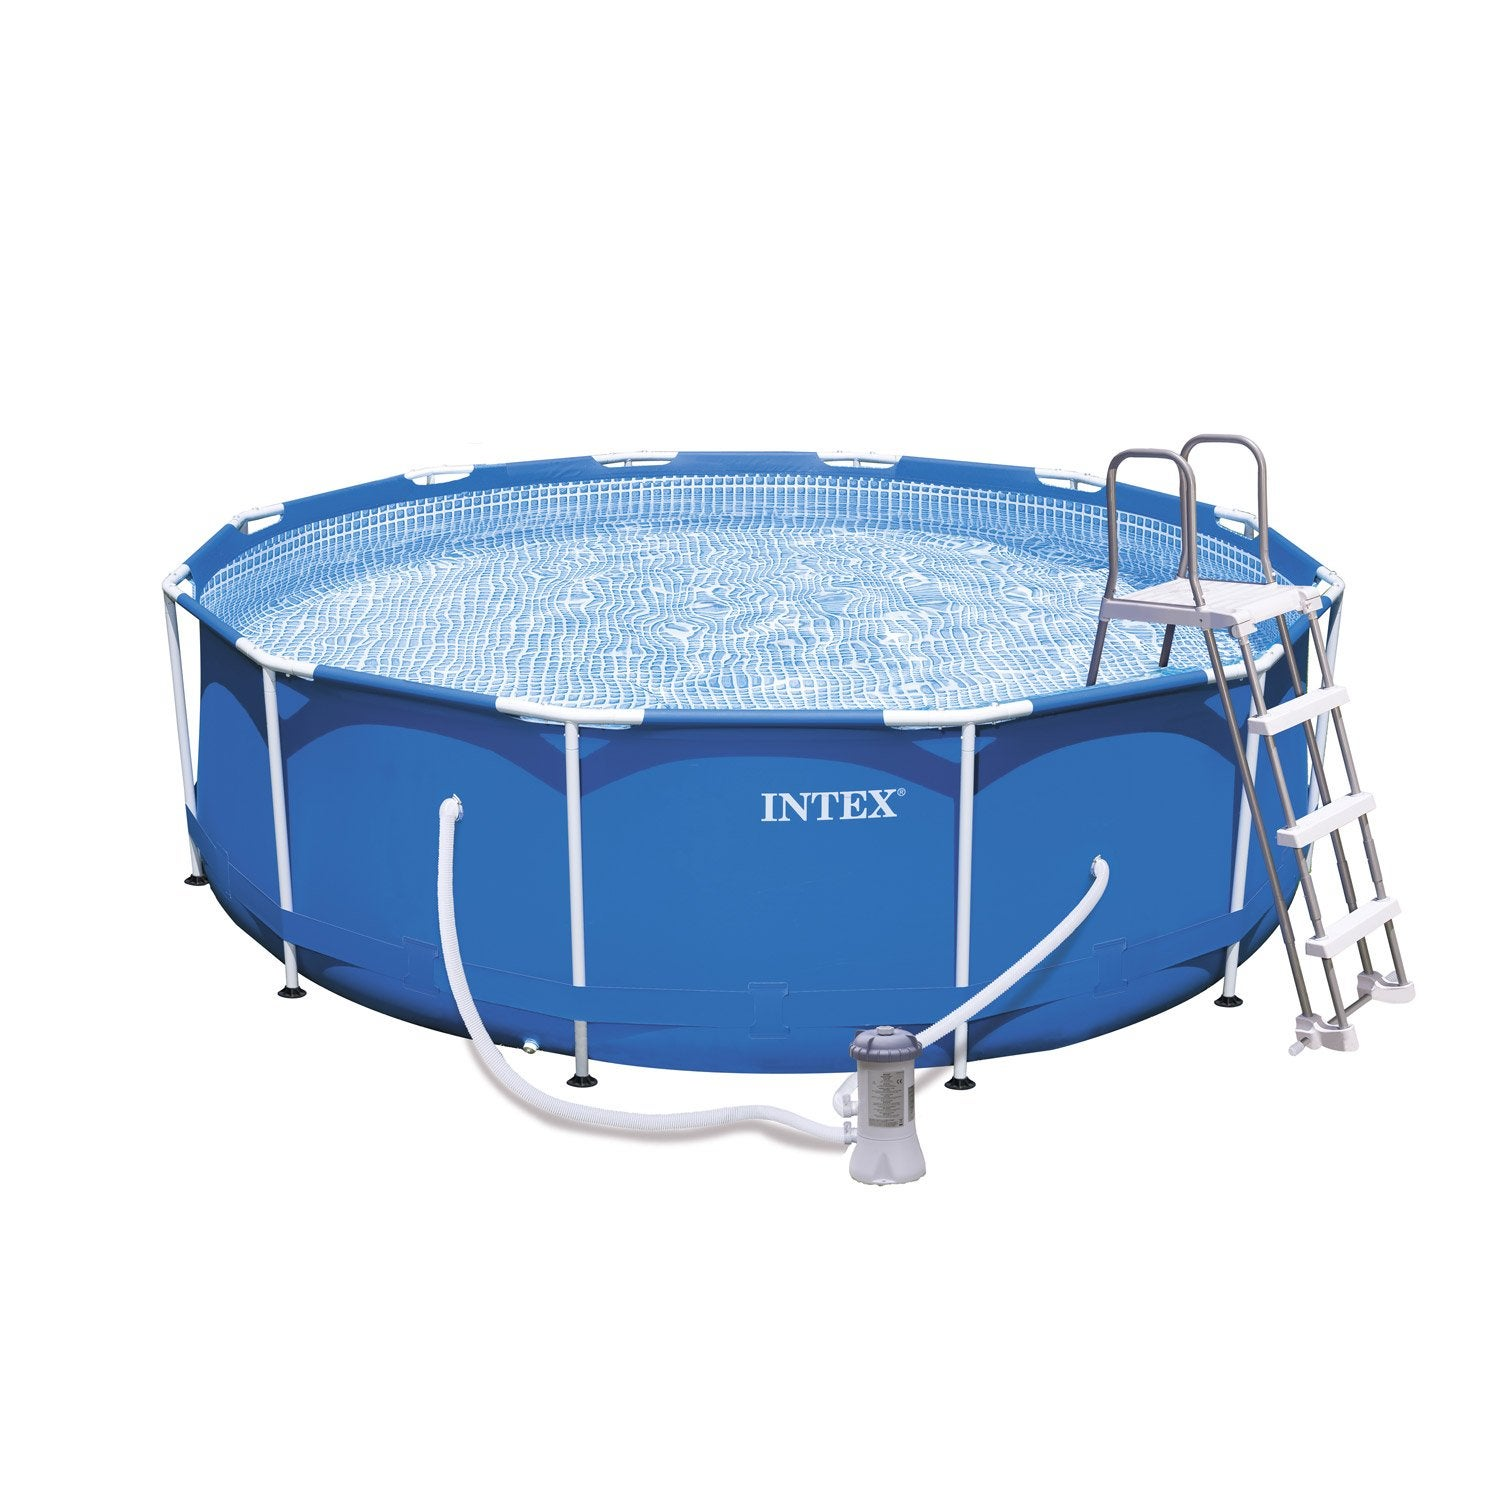 Piscine hors sol autoportante tubulaire m tal frame intex for Piscine intex 3 66